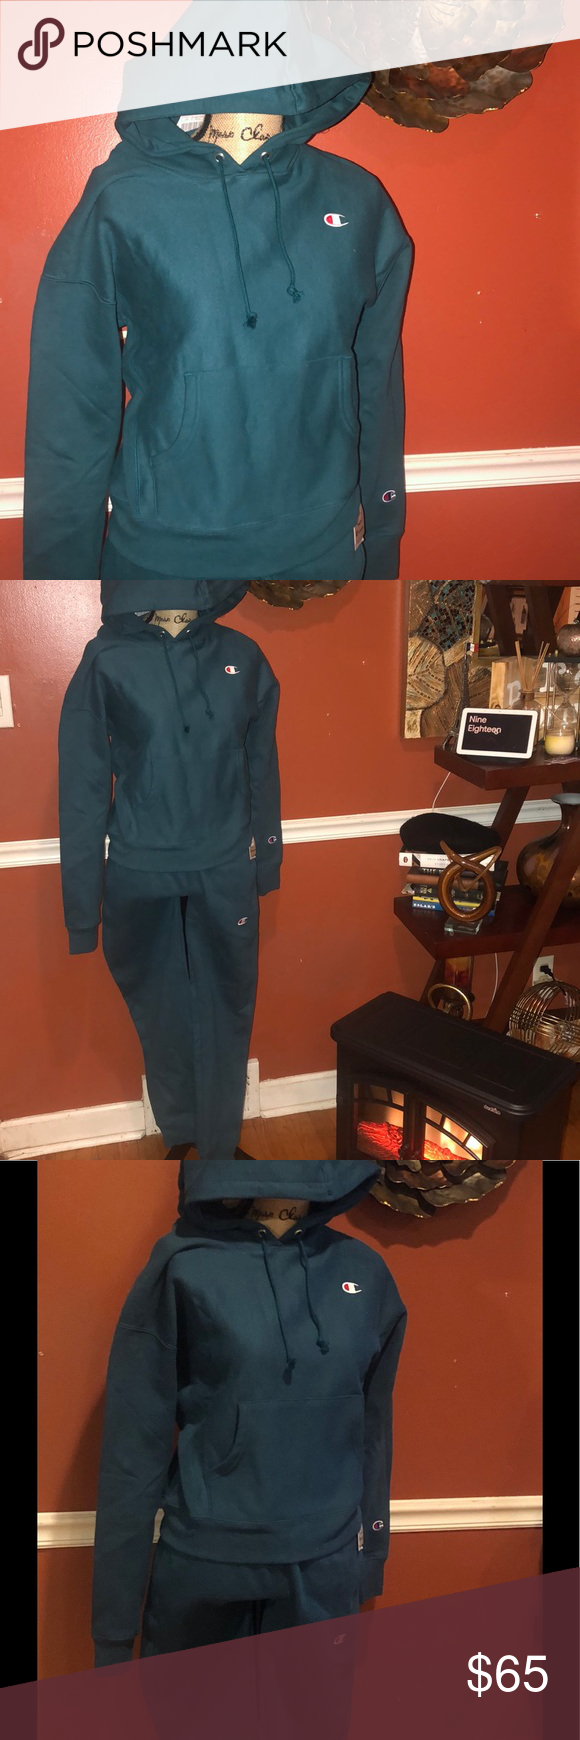 Sold Sold Sold Bnwt Champion Sweatsuit Champion Sweatsuit Sweatsuit Sweatshirt Tops [ 1740 x 580 Pixel ]